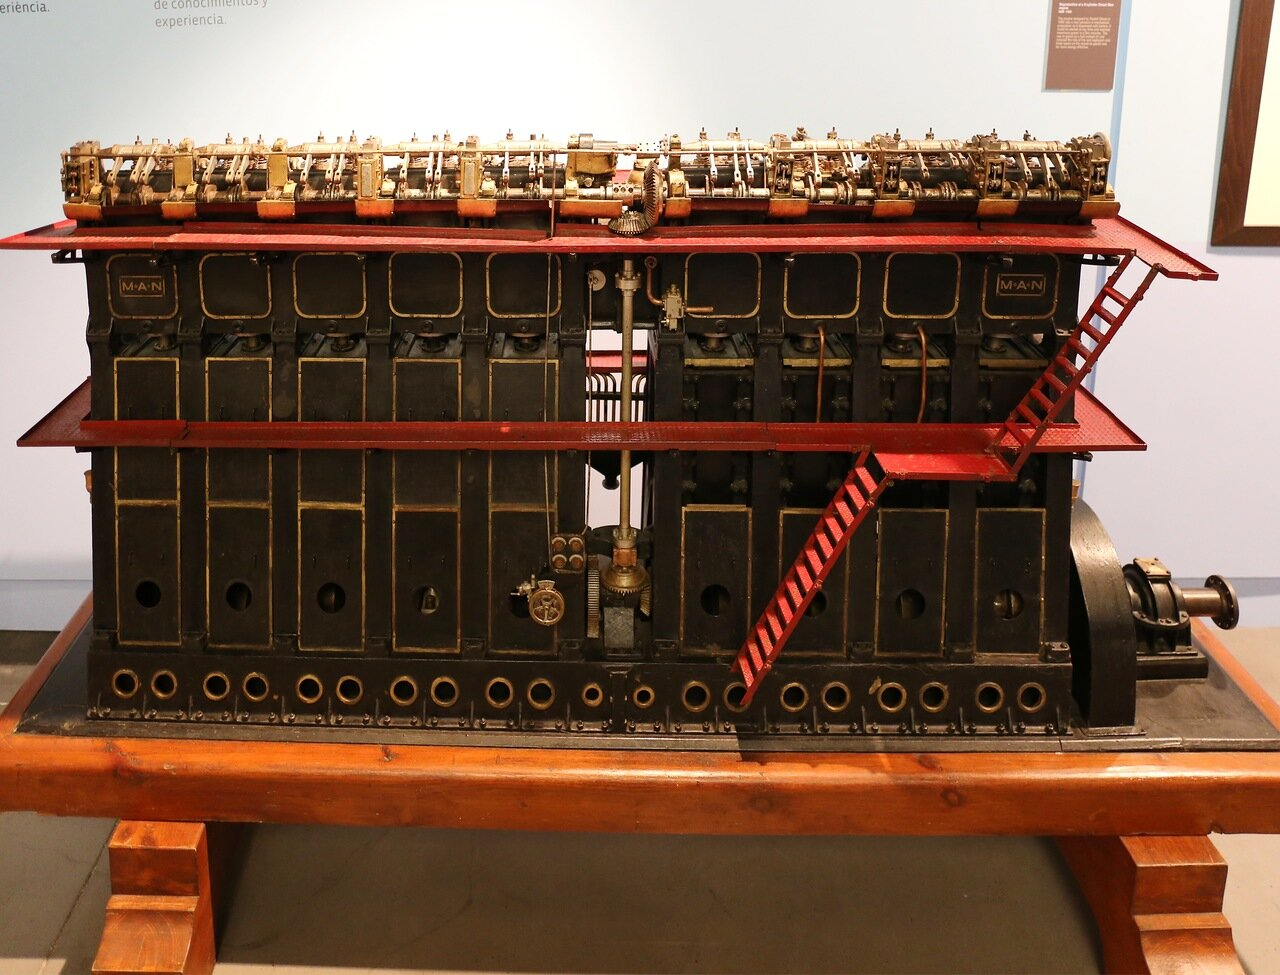 Maritime Museum of Barcelona. The layout of the steam engine